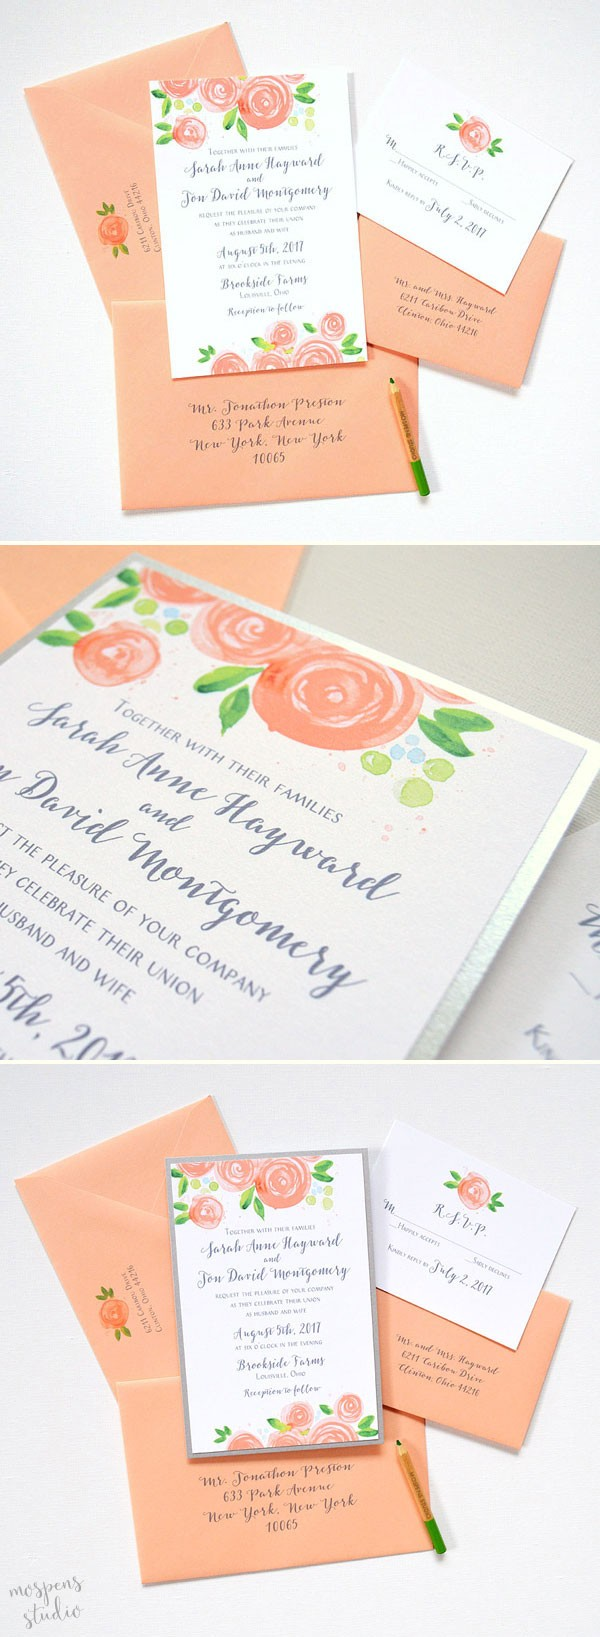 So pretty! Peach rose blooms wedding invitations by artist Michelle Mospens. 100% original watercolor art. - www.mospensstudio.com